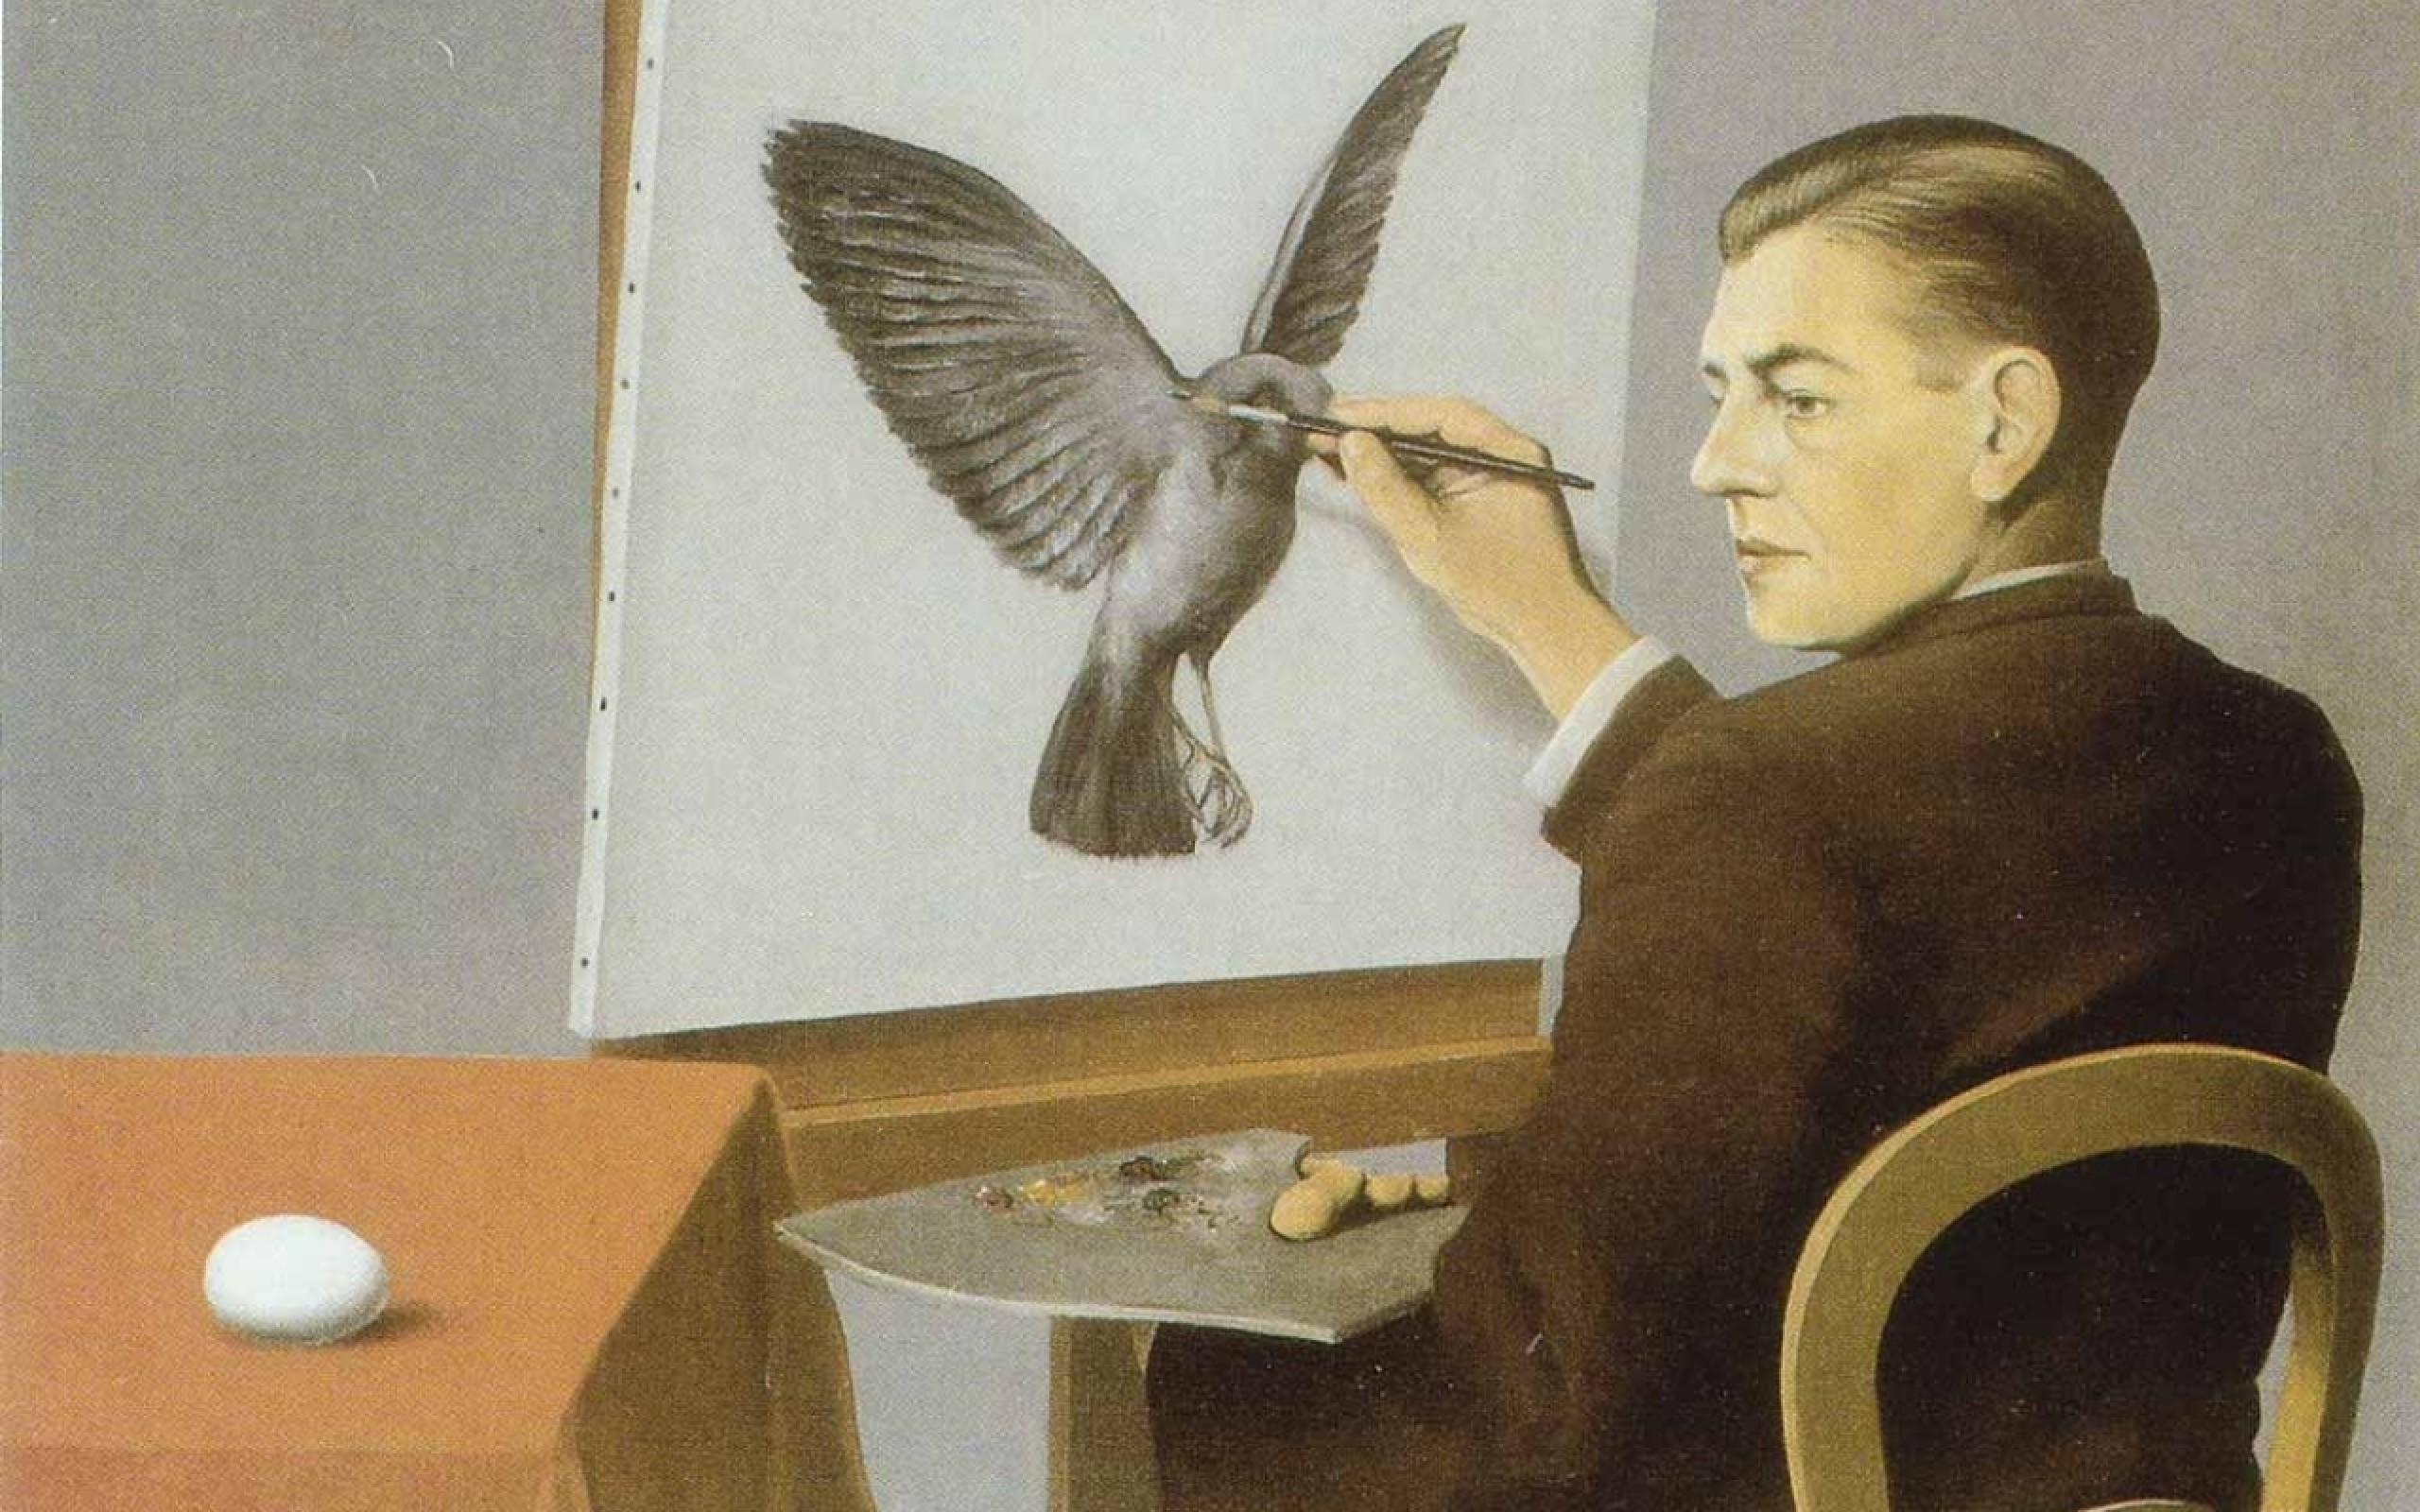 paintings self portrait painters rene magritte 1280×800 wallpaper Art HD  Wallpaper